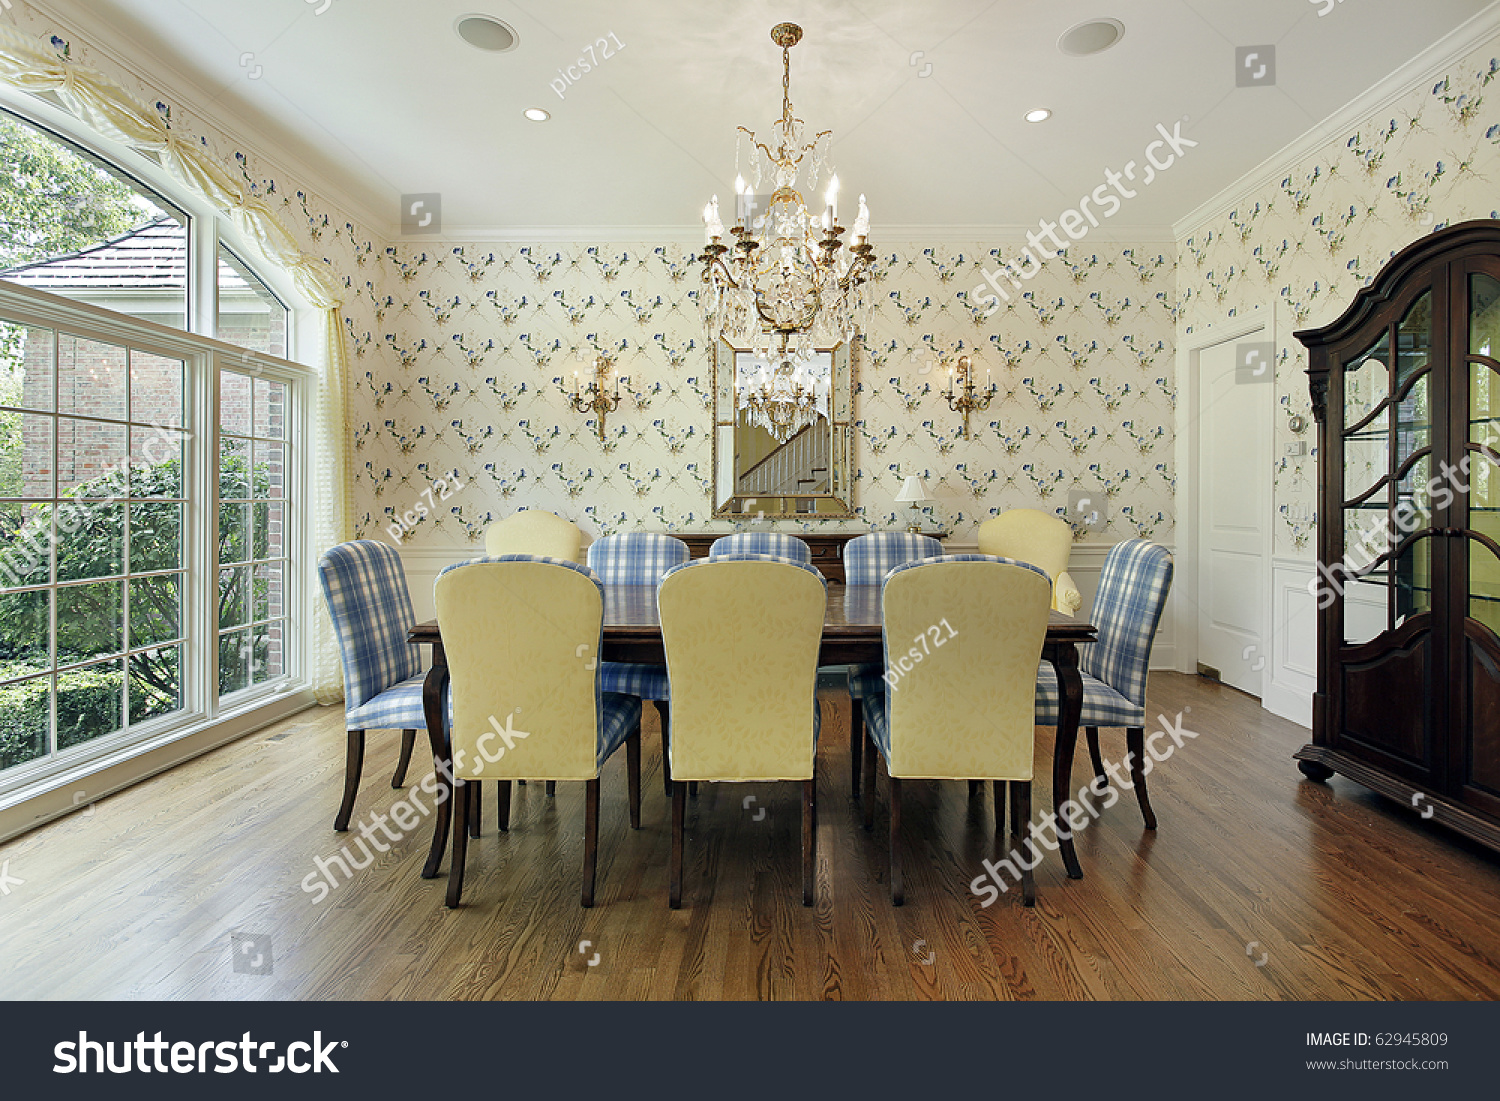 Dining Room Yellow Blue Plaid Chairs Stock Photo 62945809